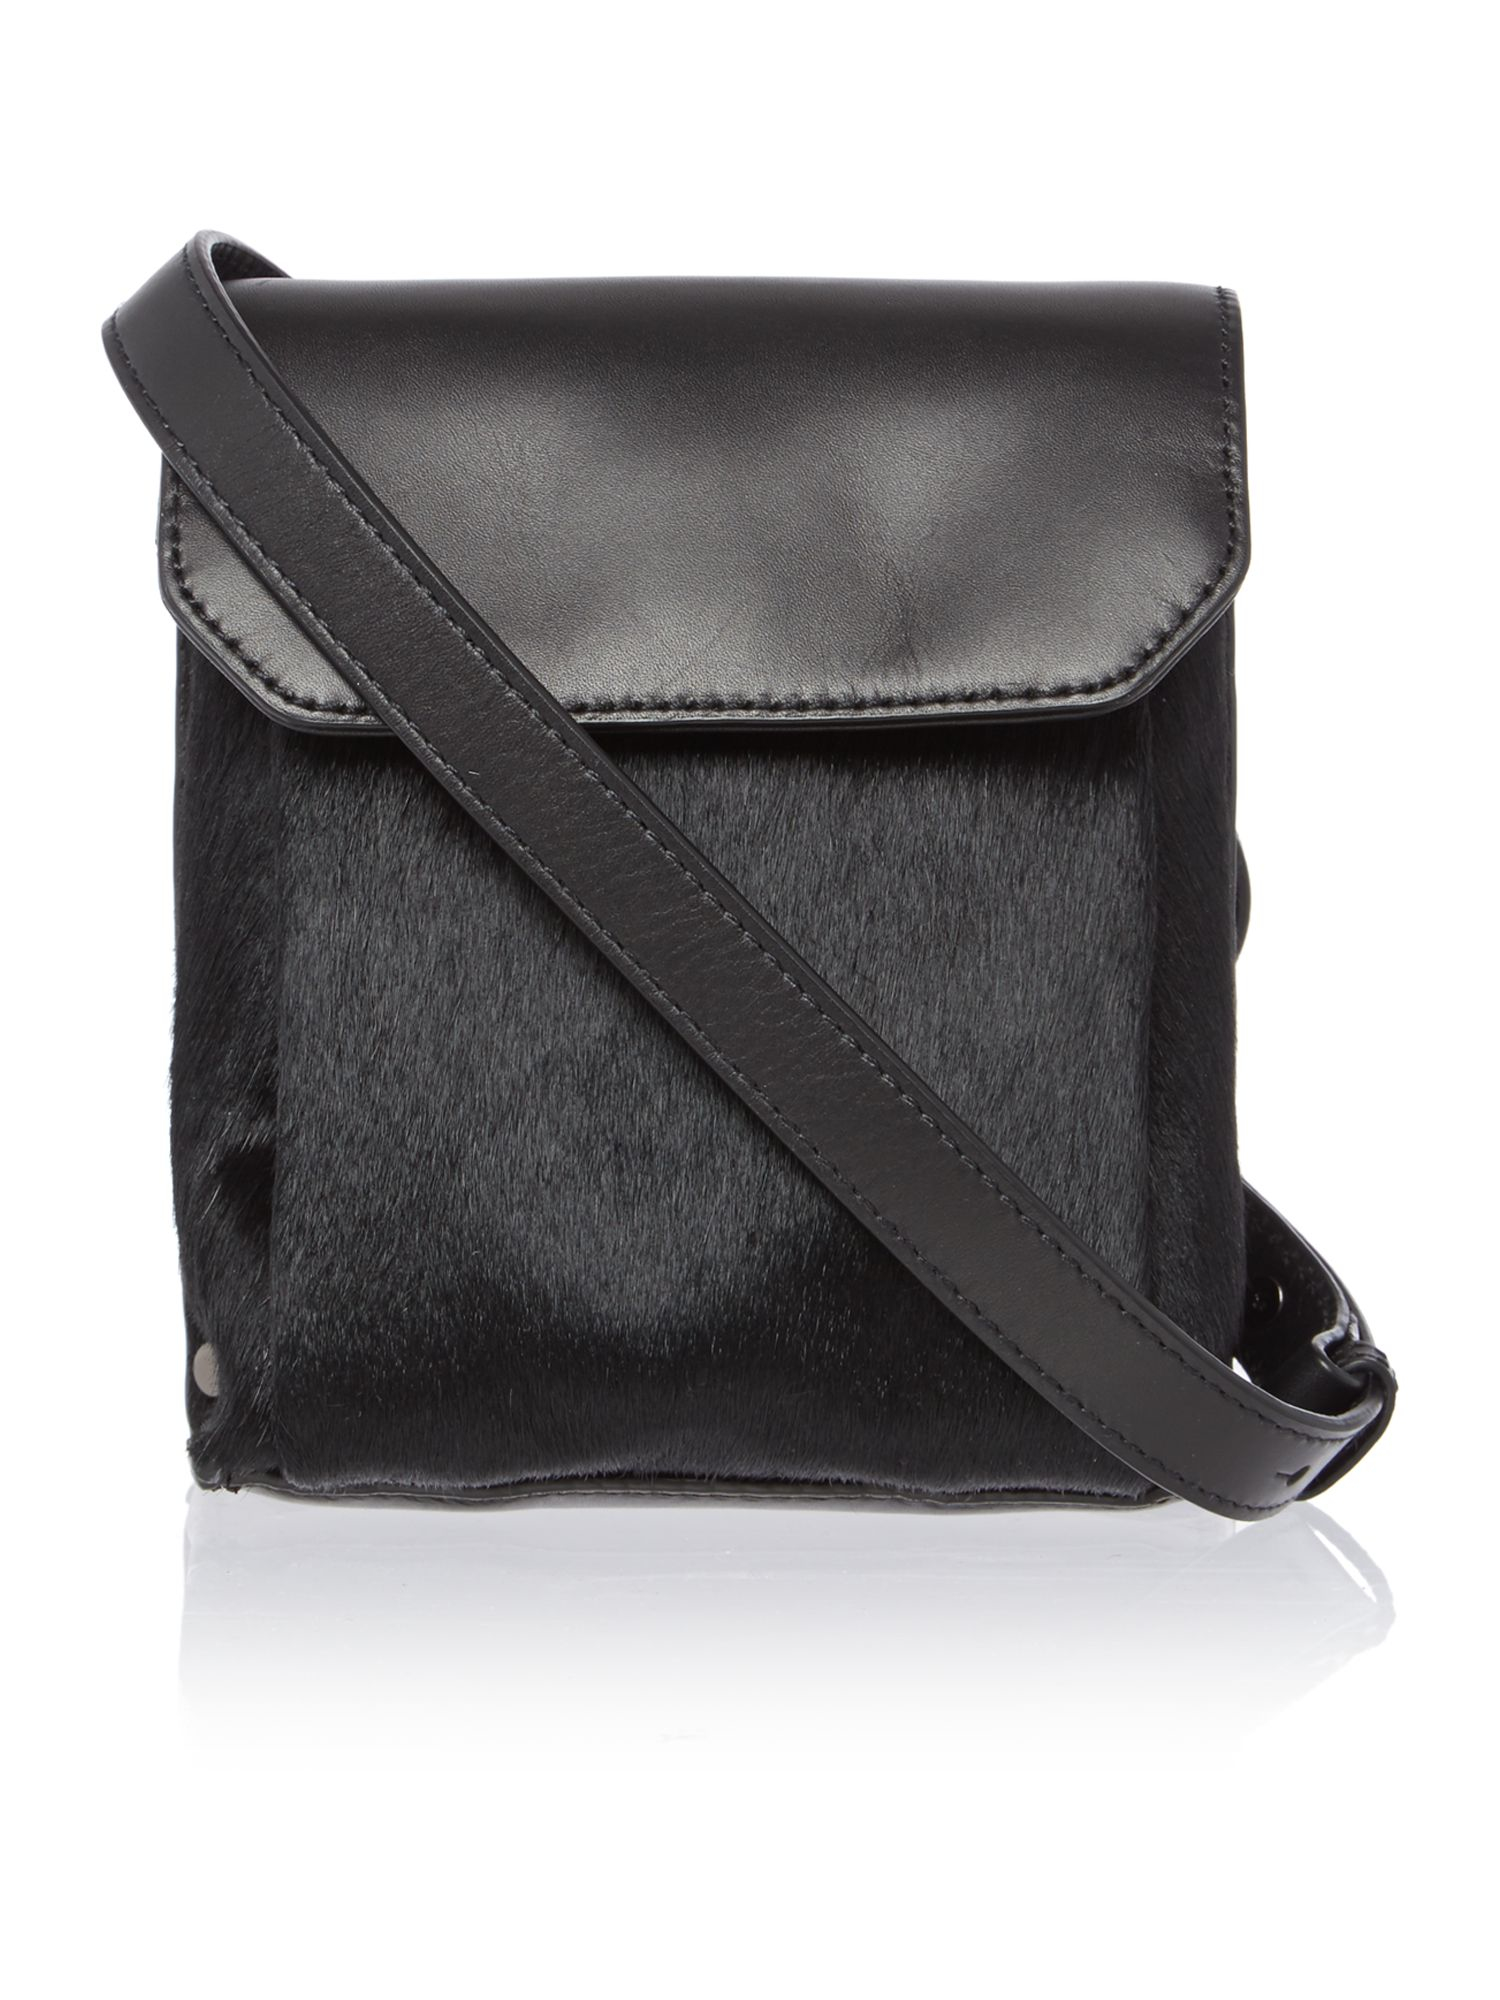 Kenneth Cole Cooper Black Small Crossbody Bag In Black Lyst